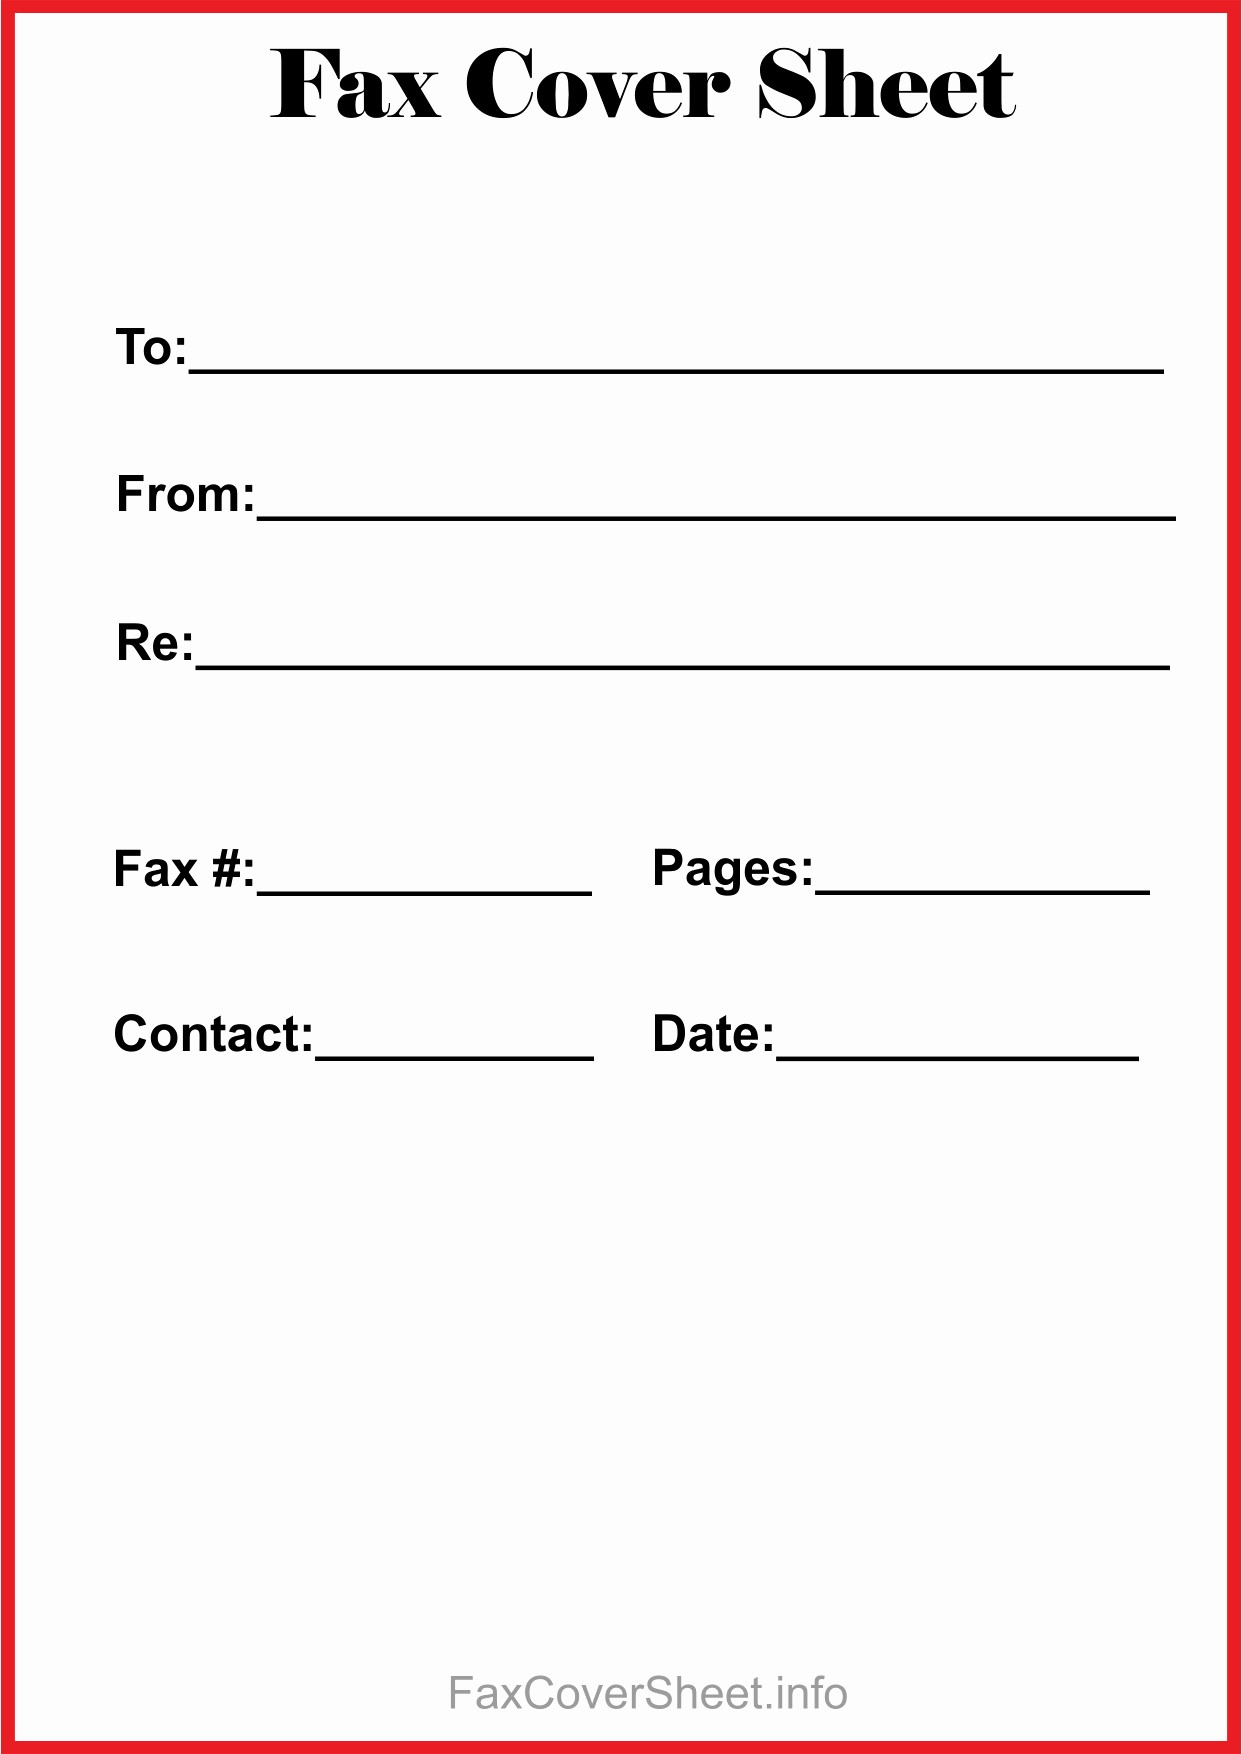 Printable Basic Fax Cover Sheet Beautiful Free Fax Cover Sheet Template Download